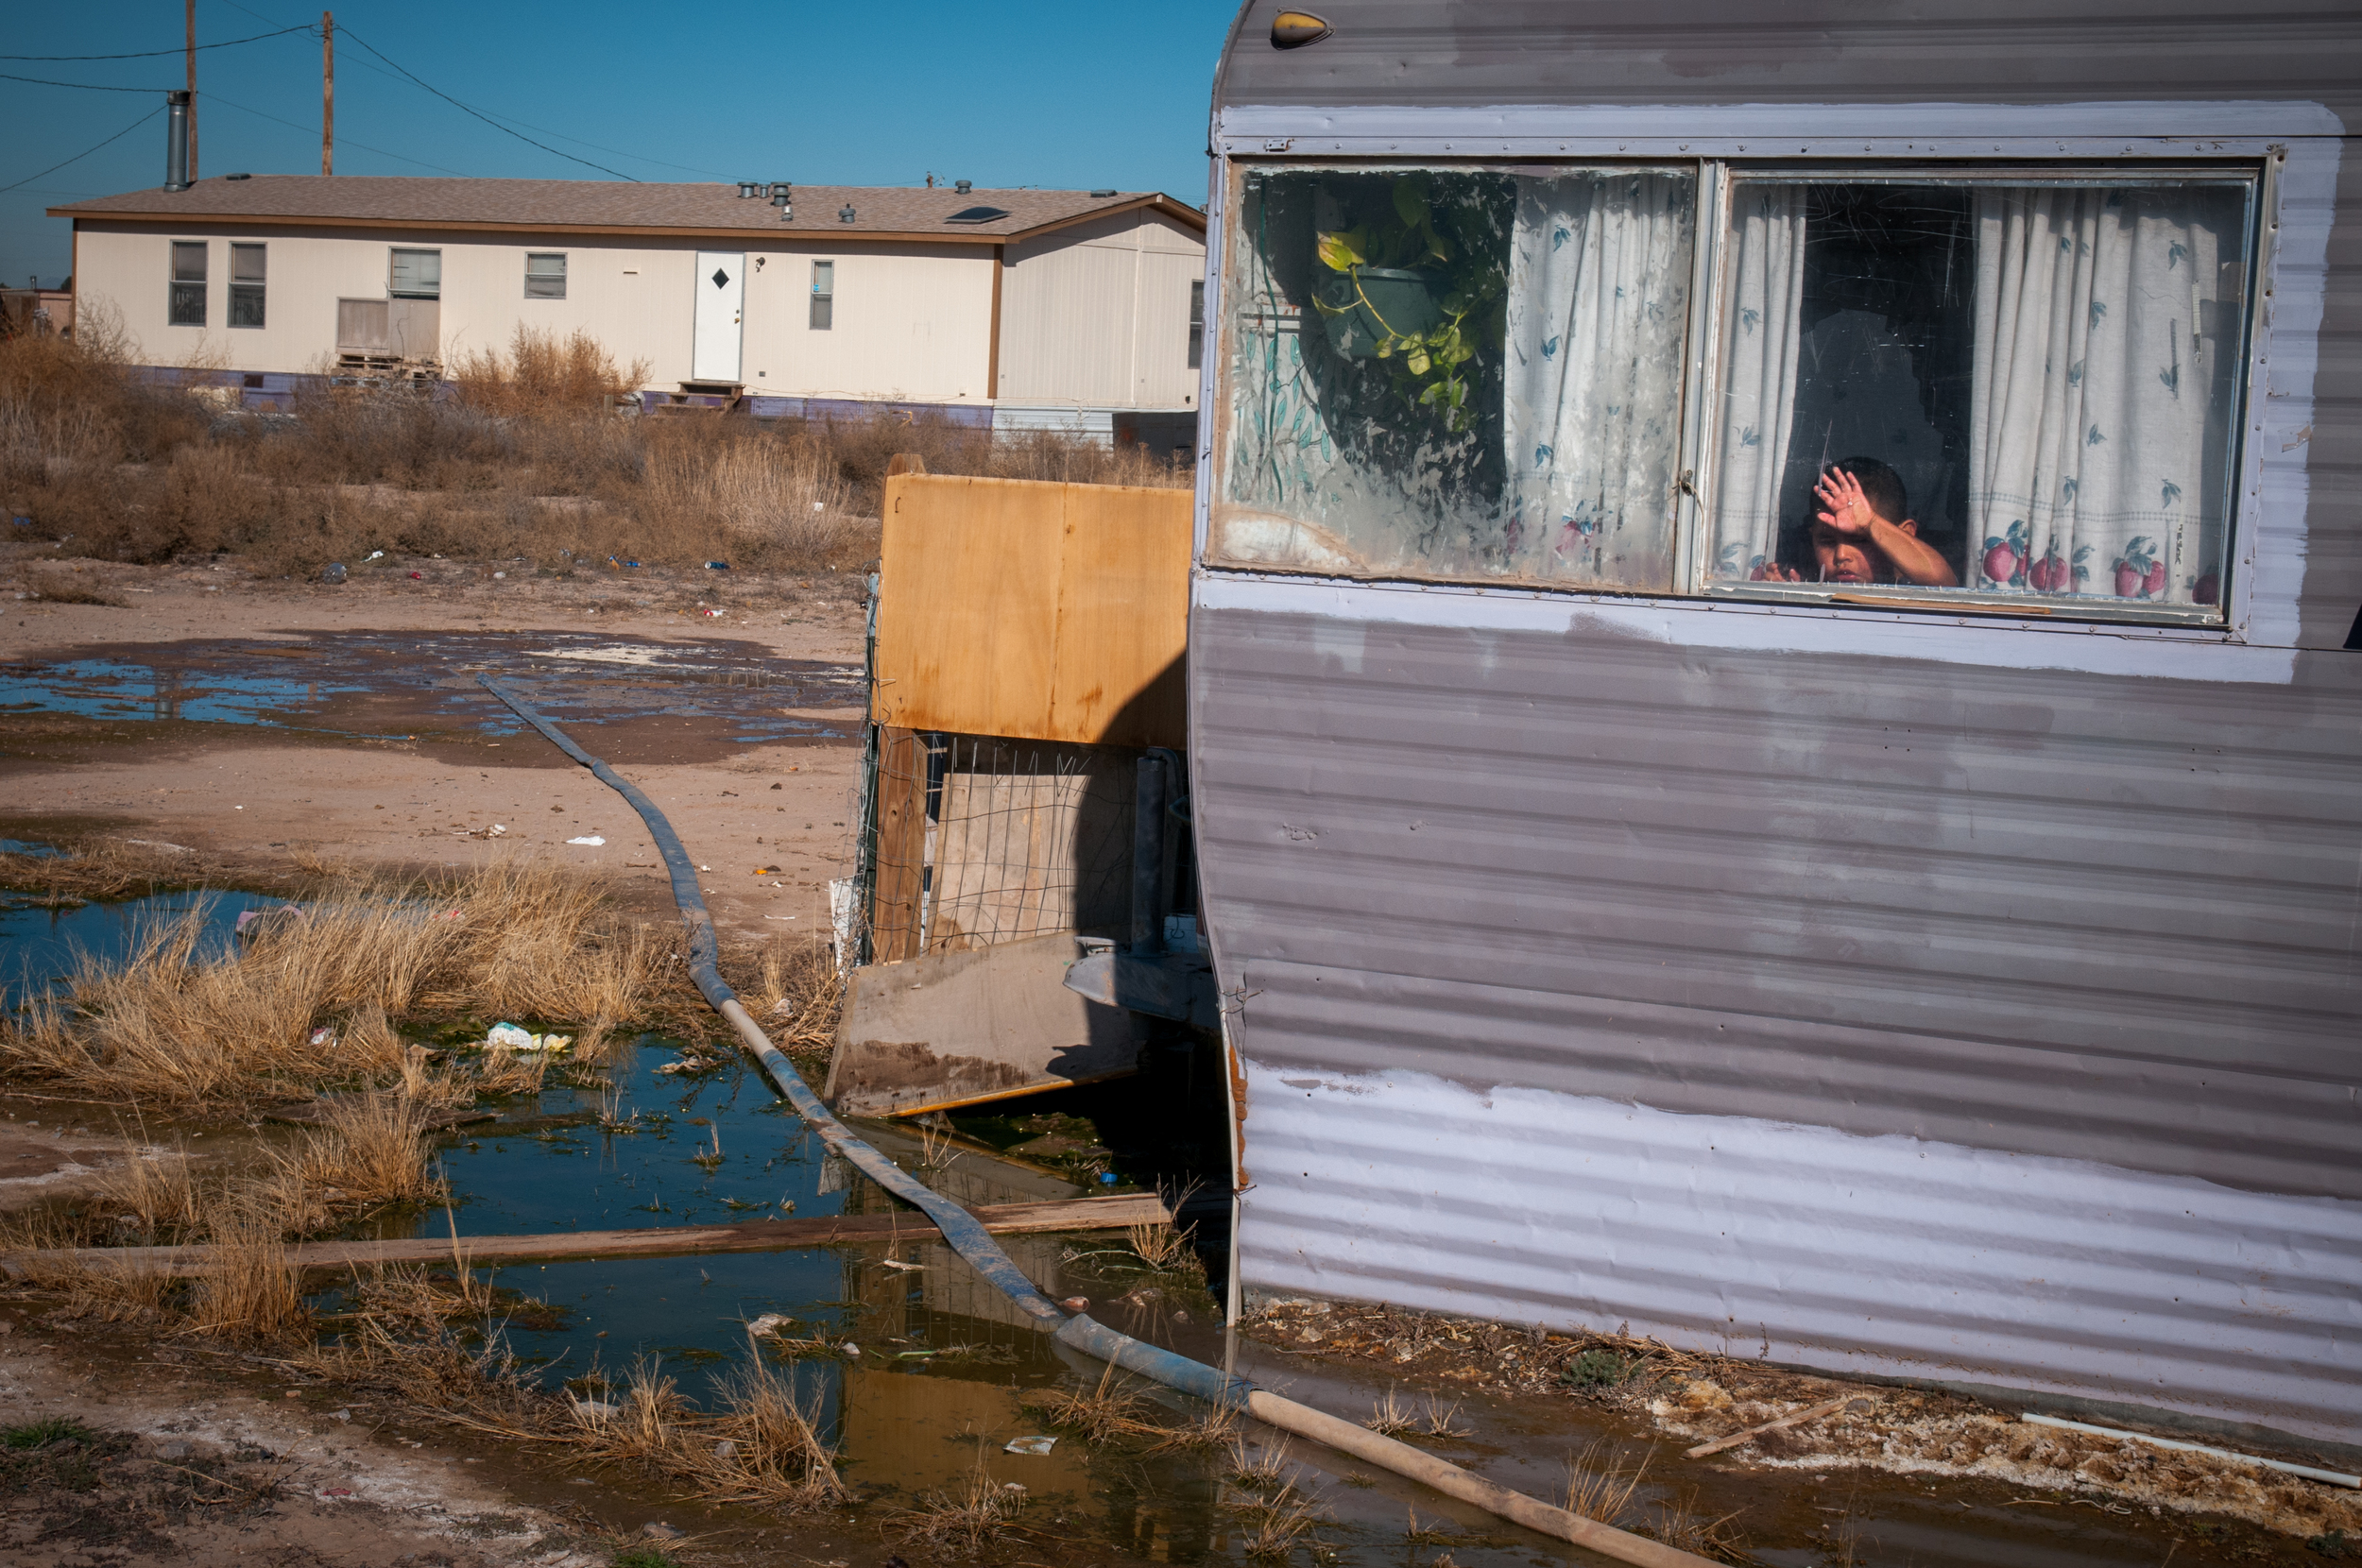 A boy looks out from a trailer as raw sewage seeps out from the ground.